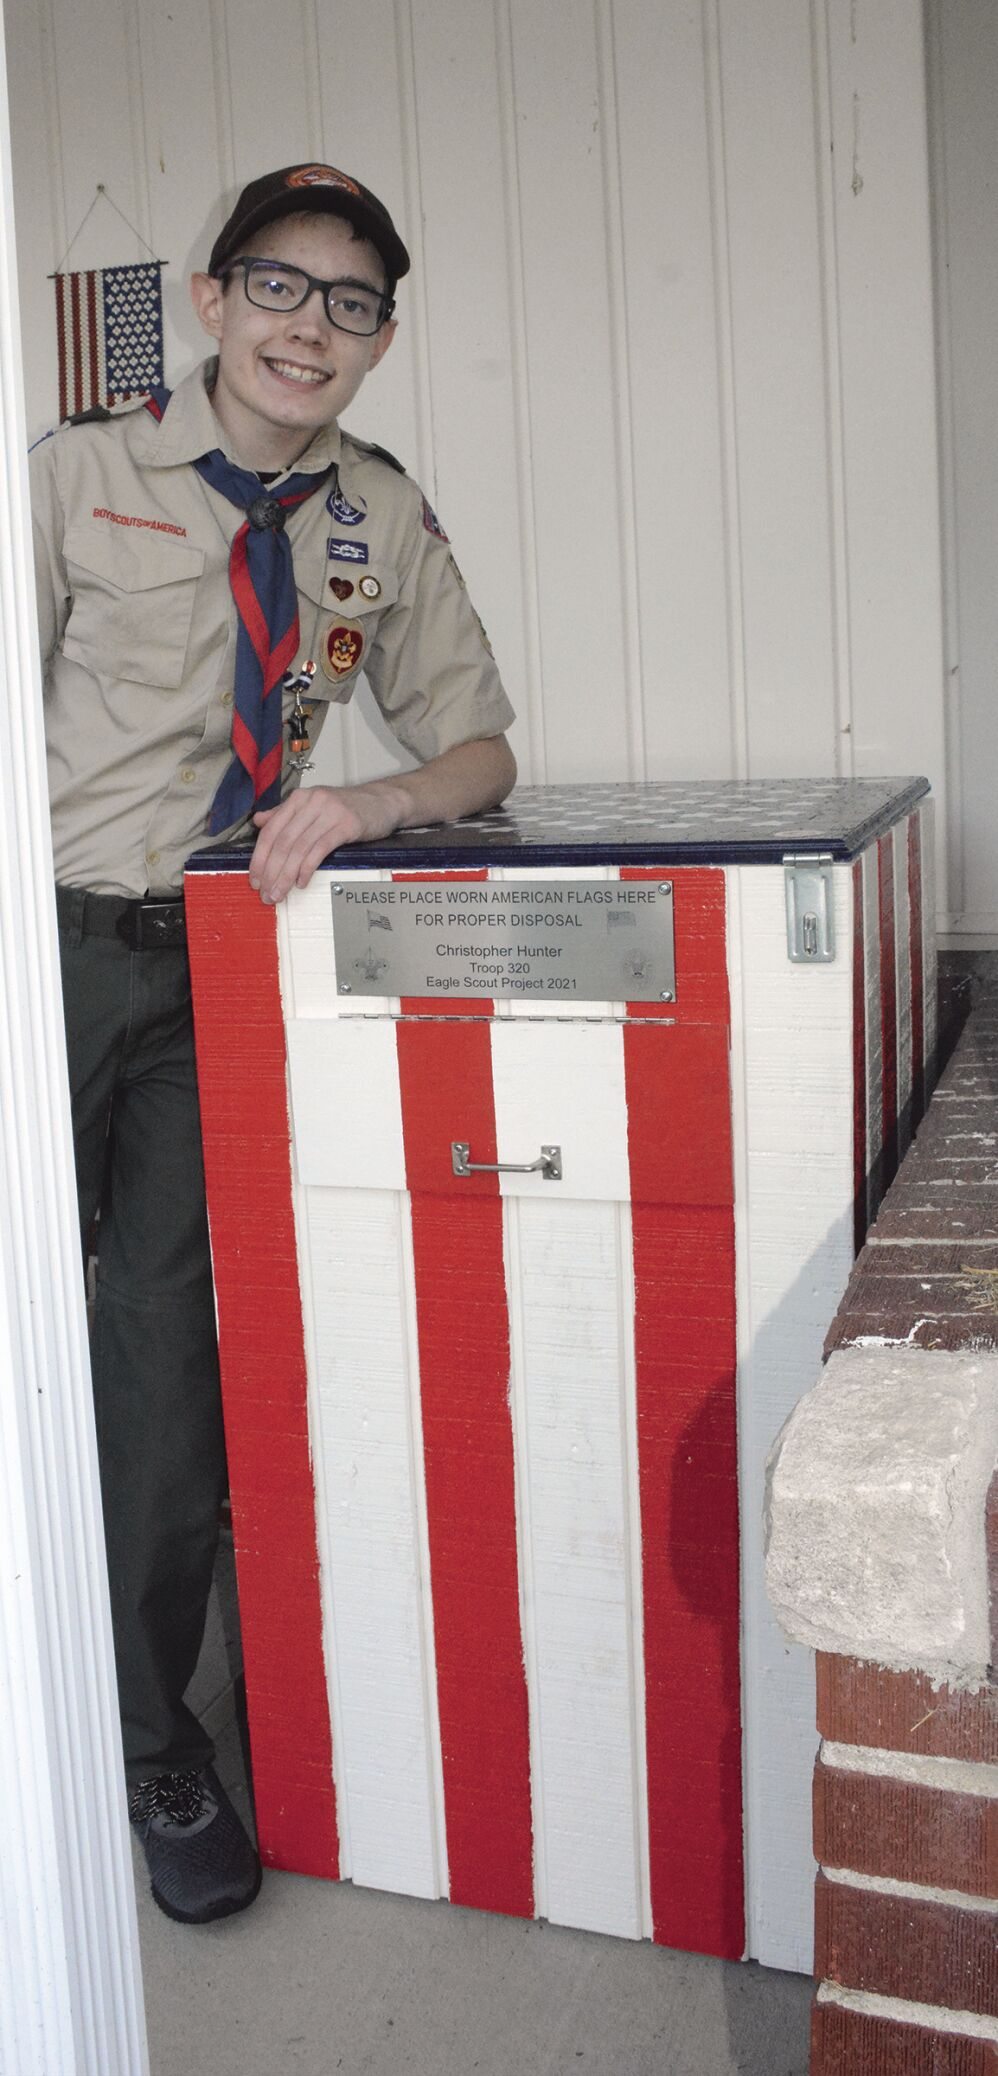 Liberty North junior creates Eagle Scout project for American flag disposal